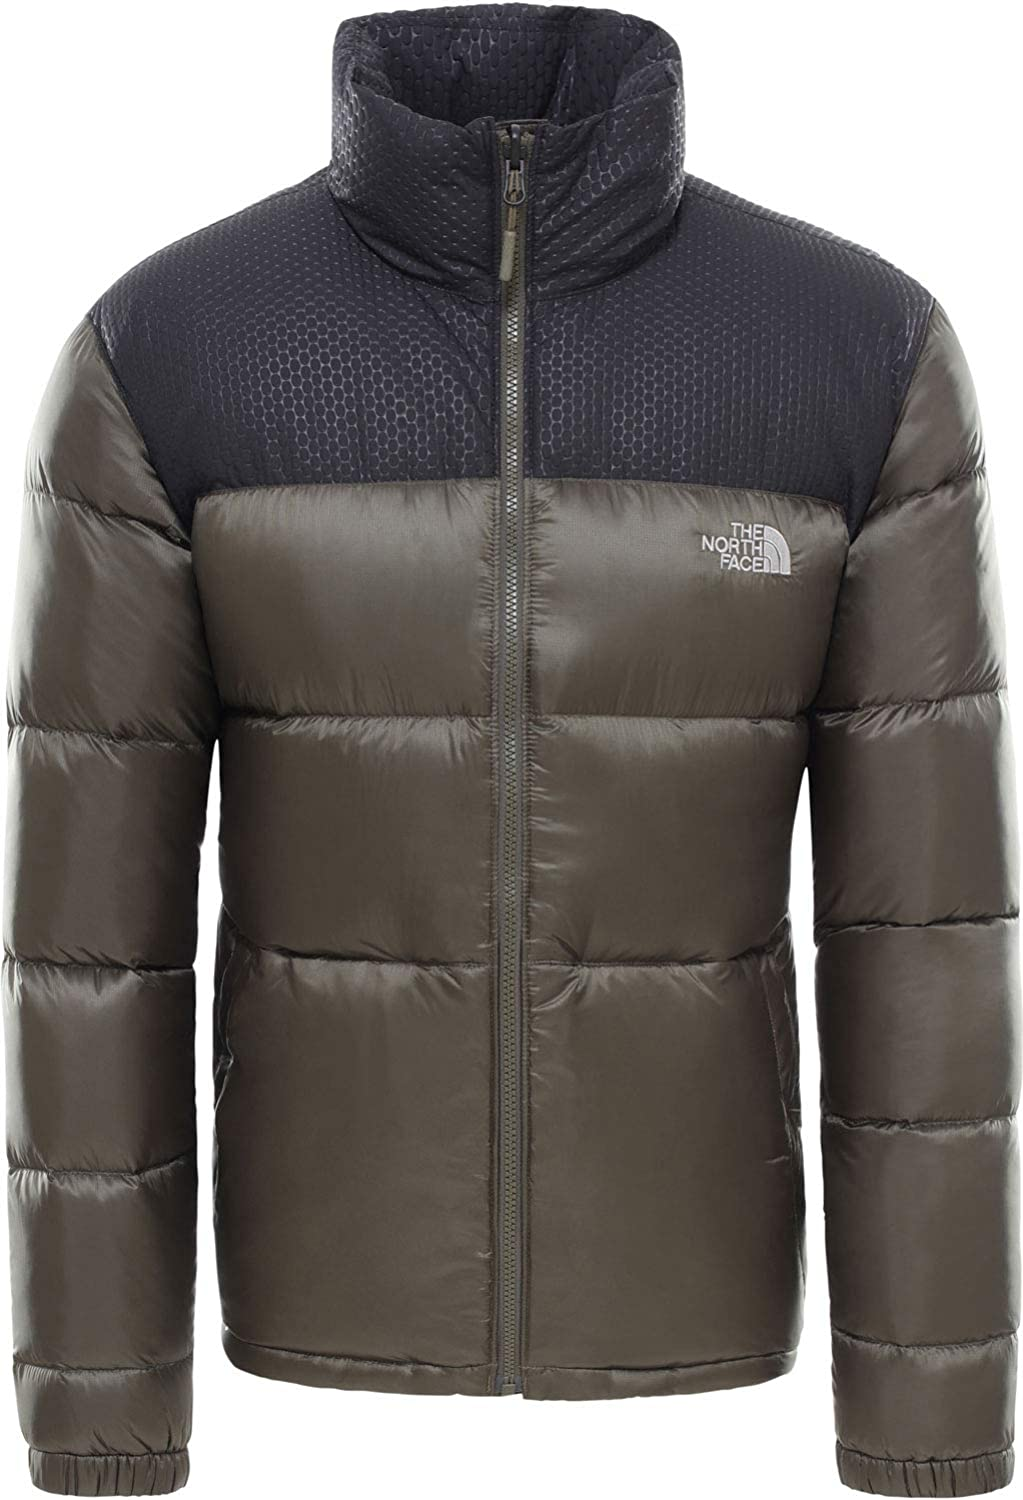 The North Face Herren Nevero Daunenjacke oliv M: